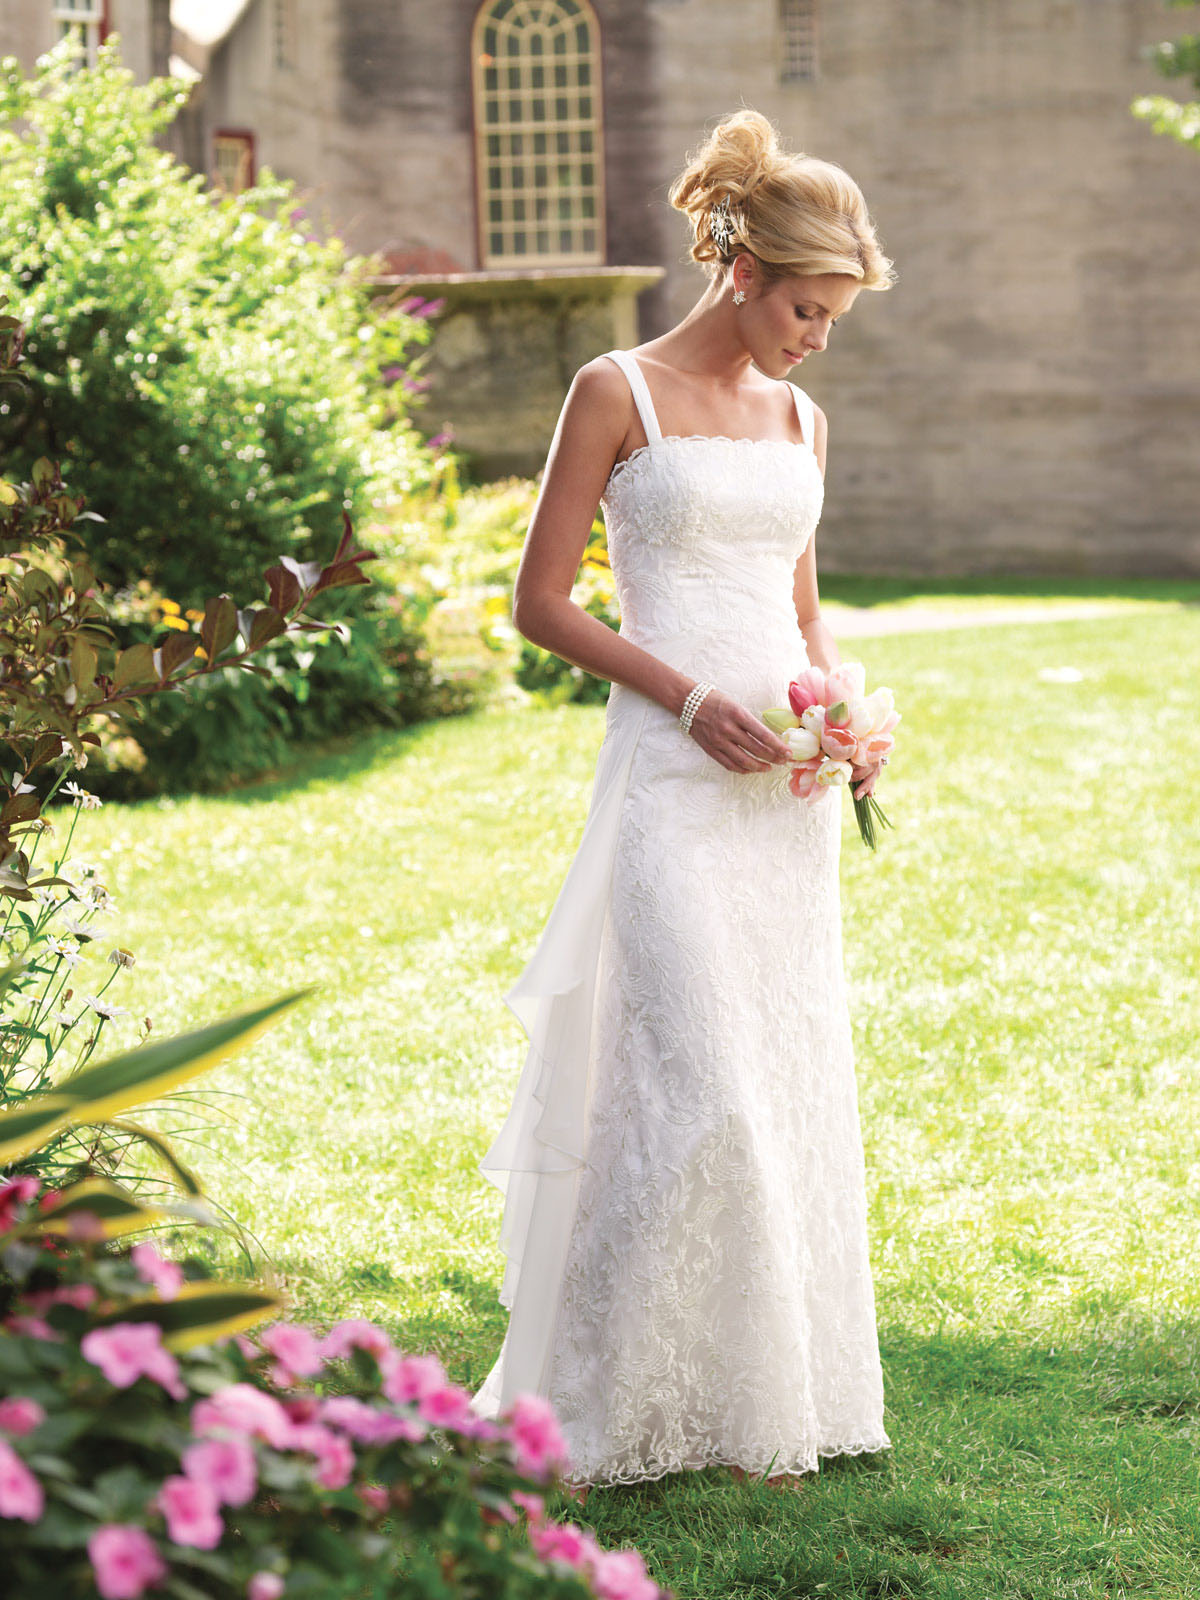 Top 10 perfect beach wedding dresses of 2014 for My perfect wedding dress